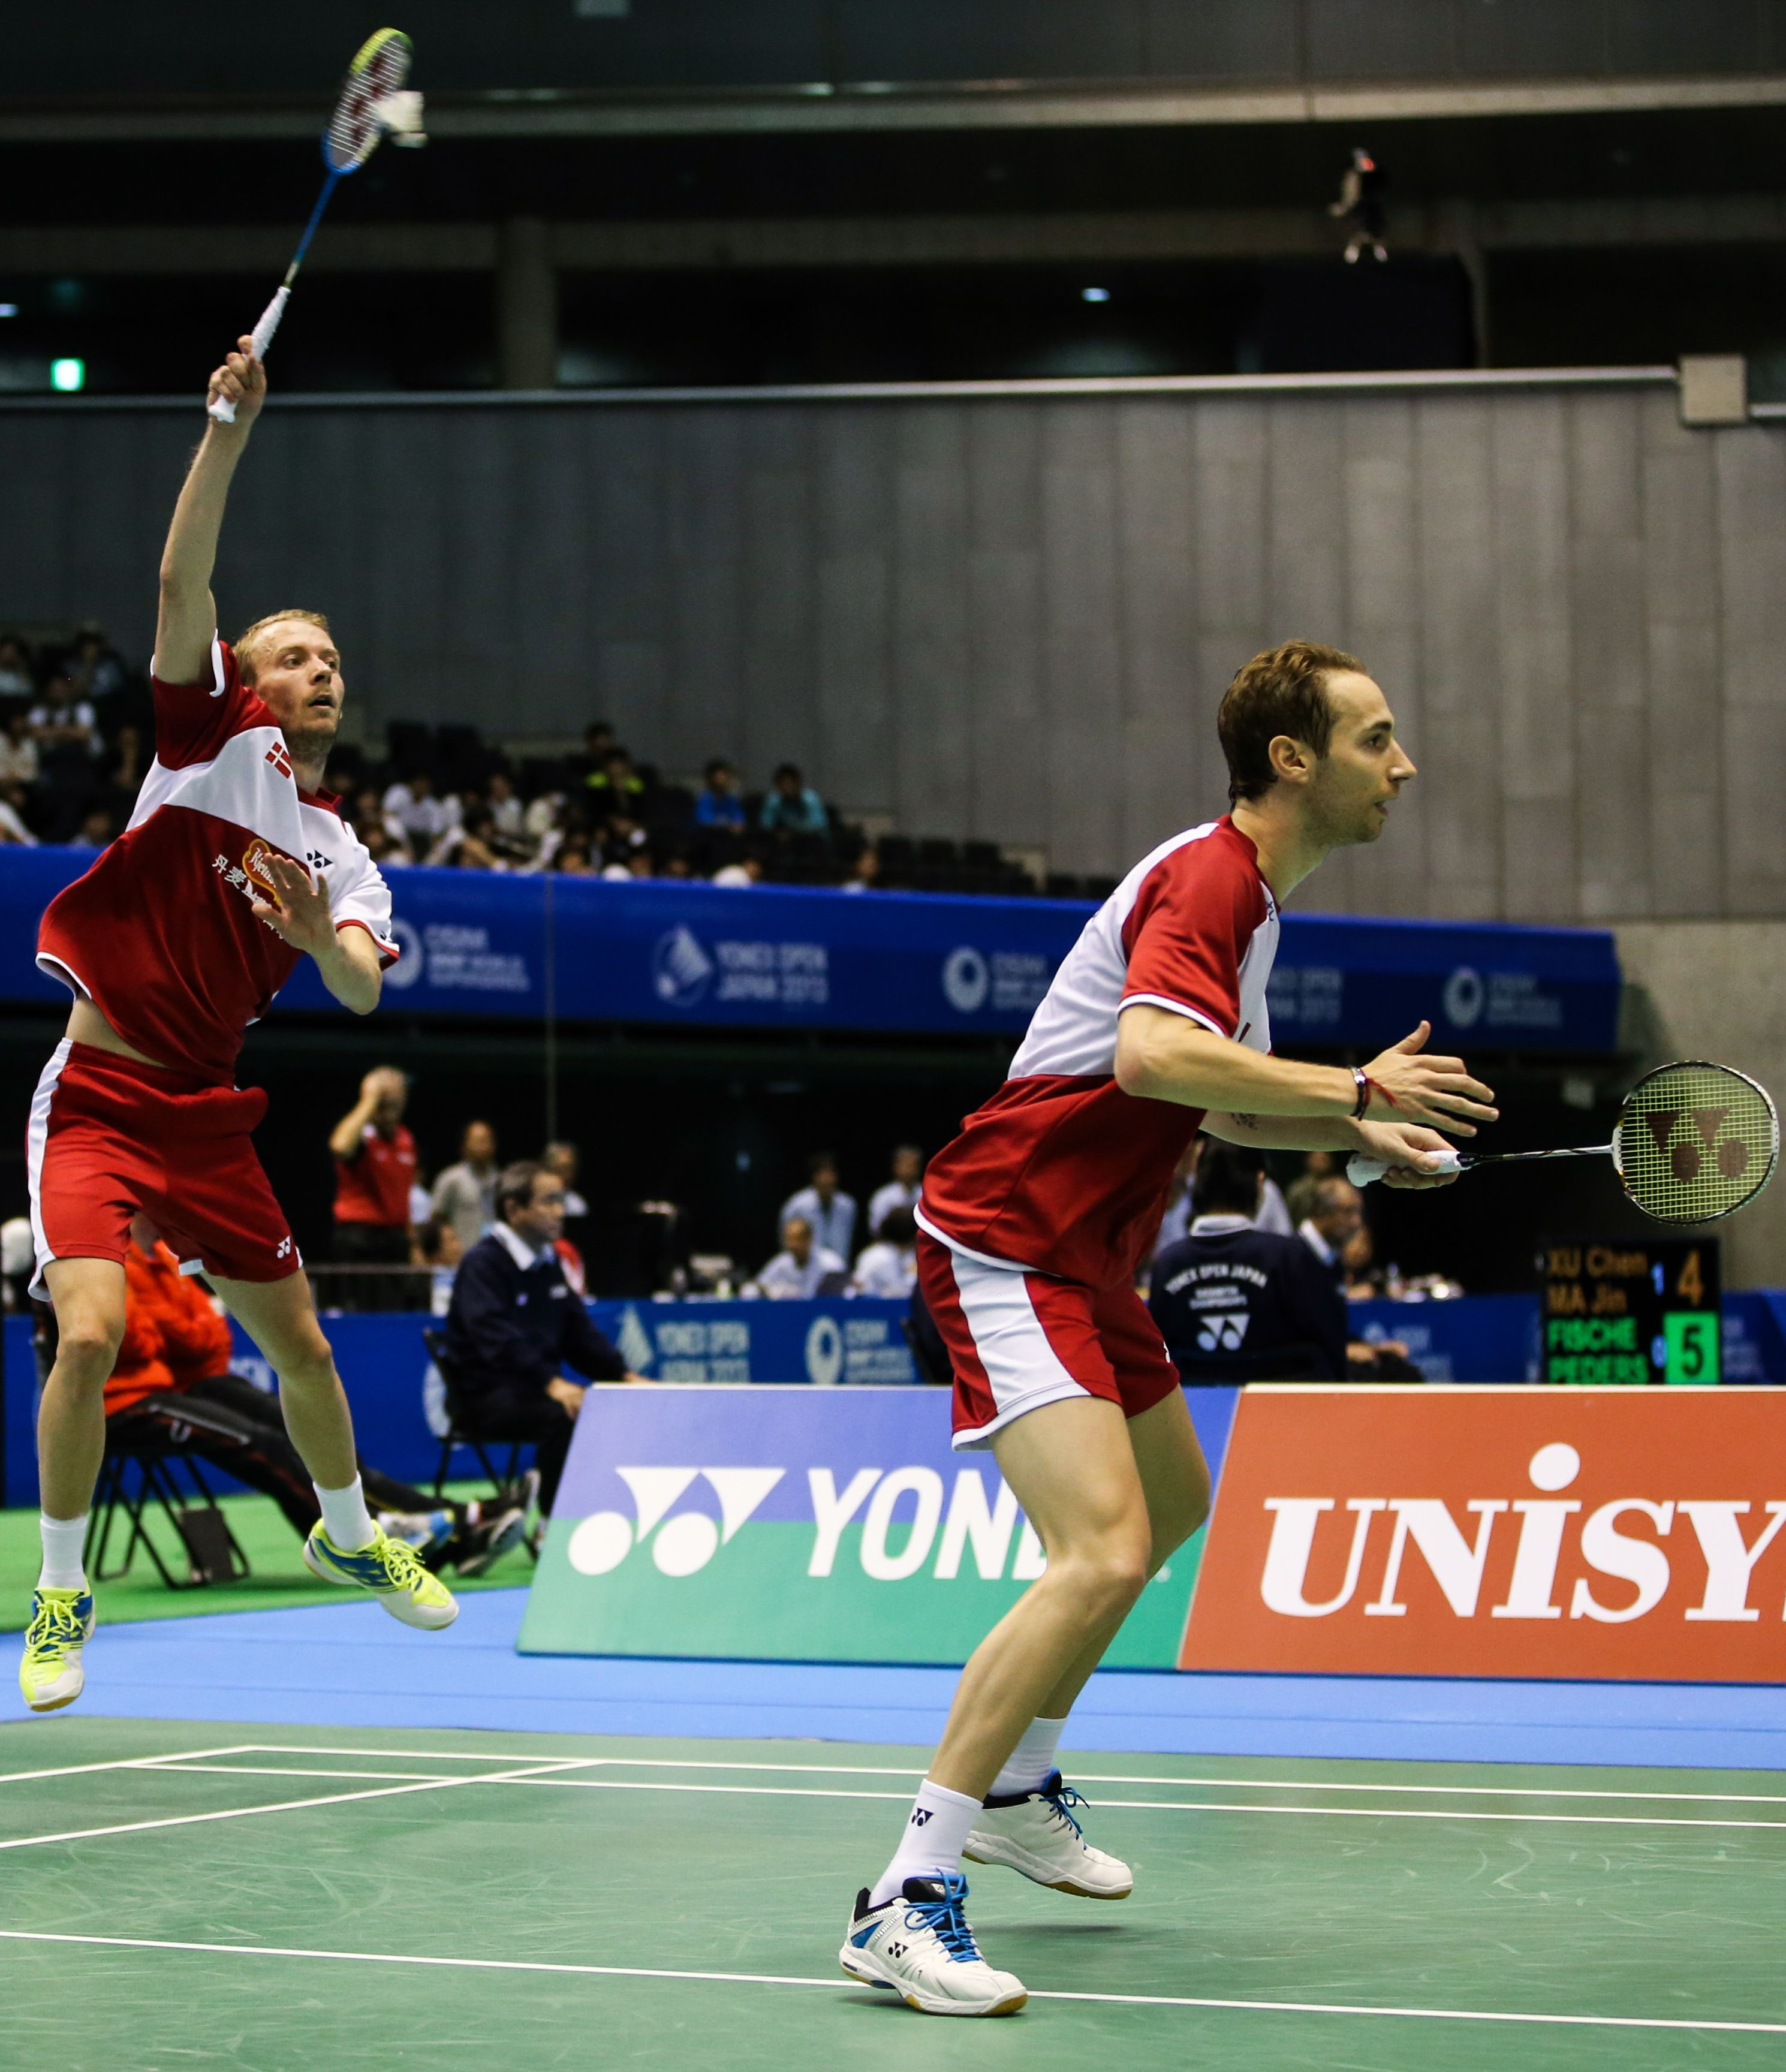 Doubles Players Mathias Boe VOLTRIC 80 & Carsten Mogensen